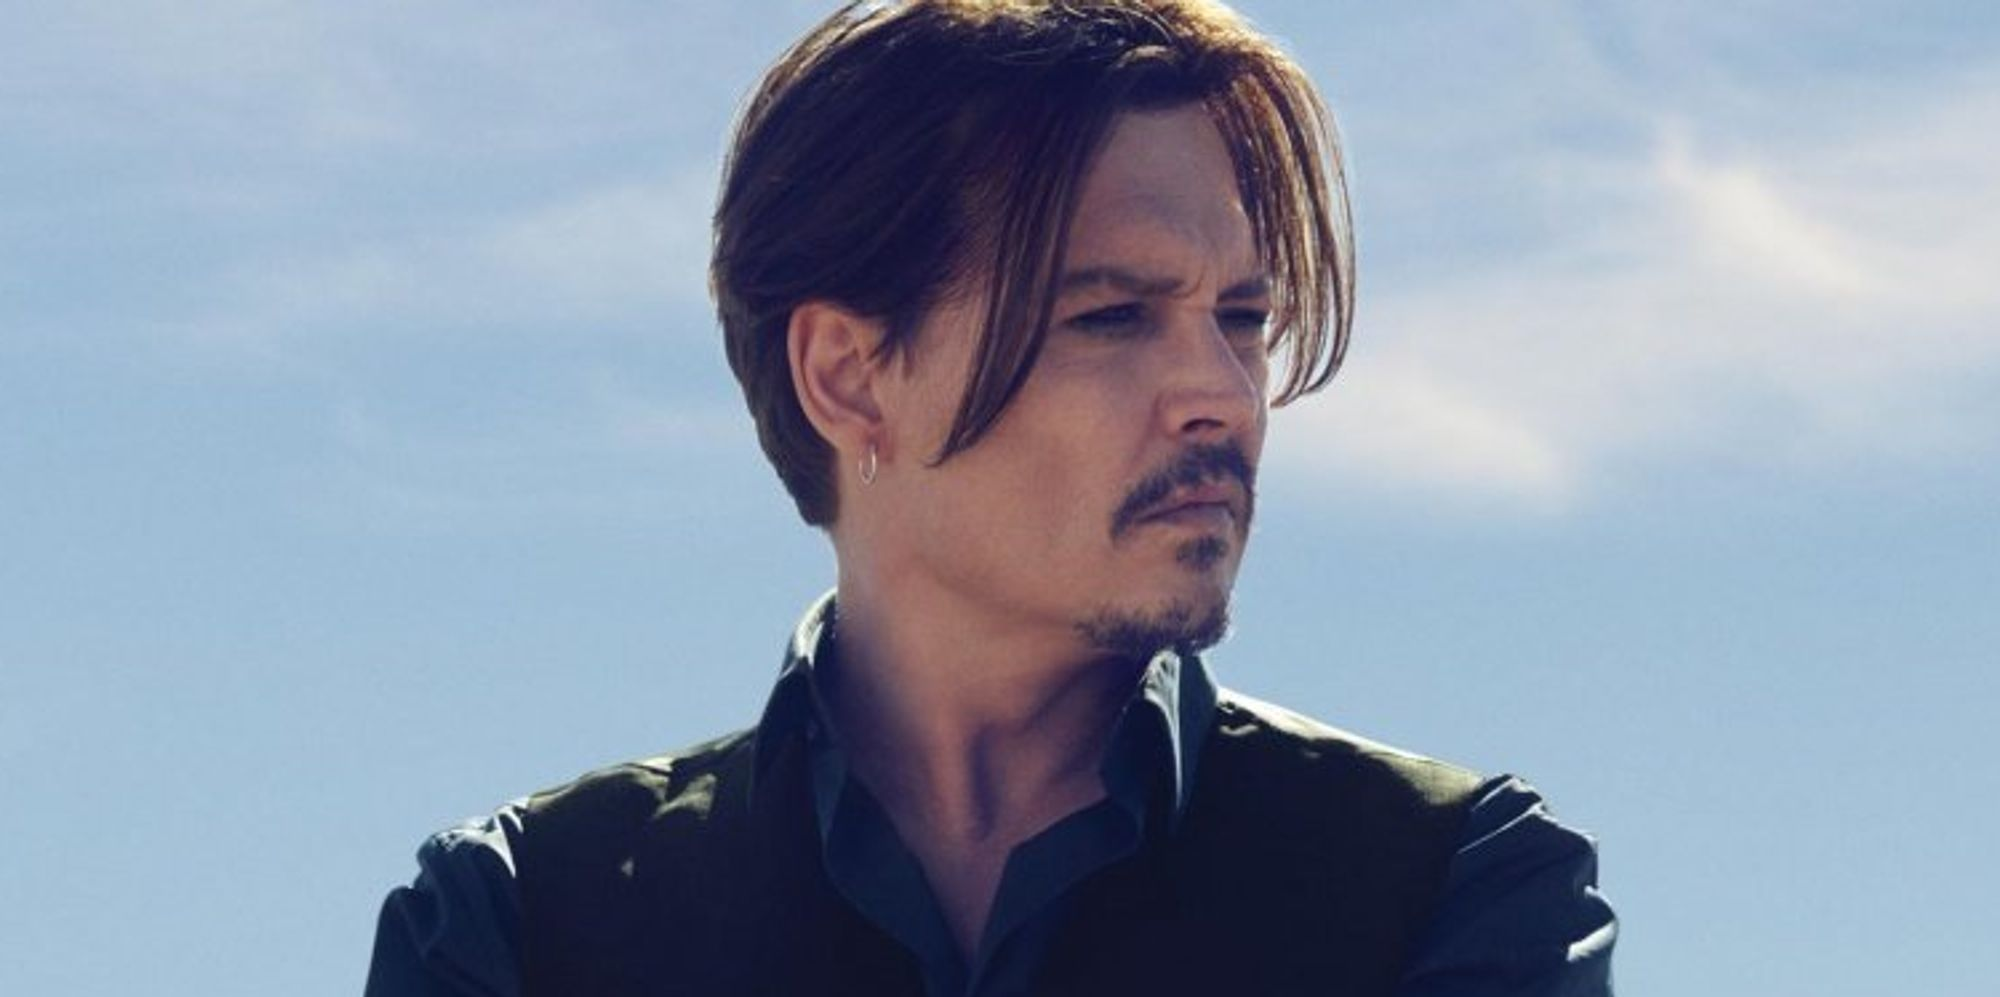 Johnny Depp Dior Sauvage Commercial 2015 - YouTube